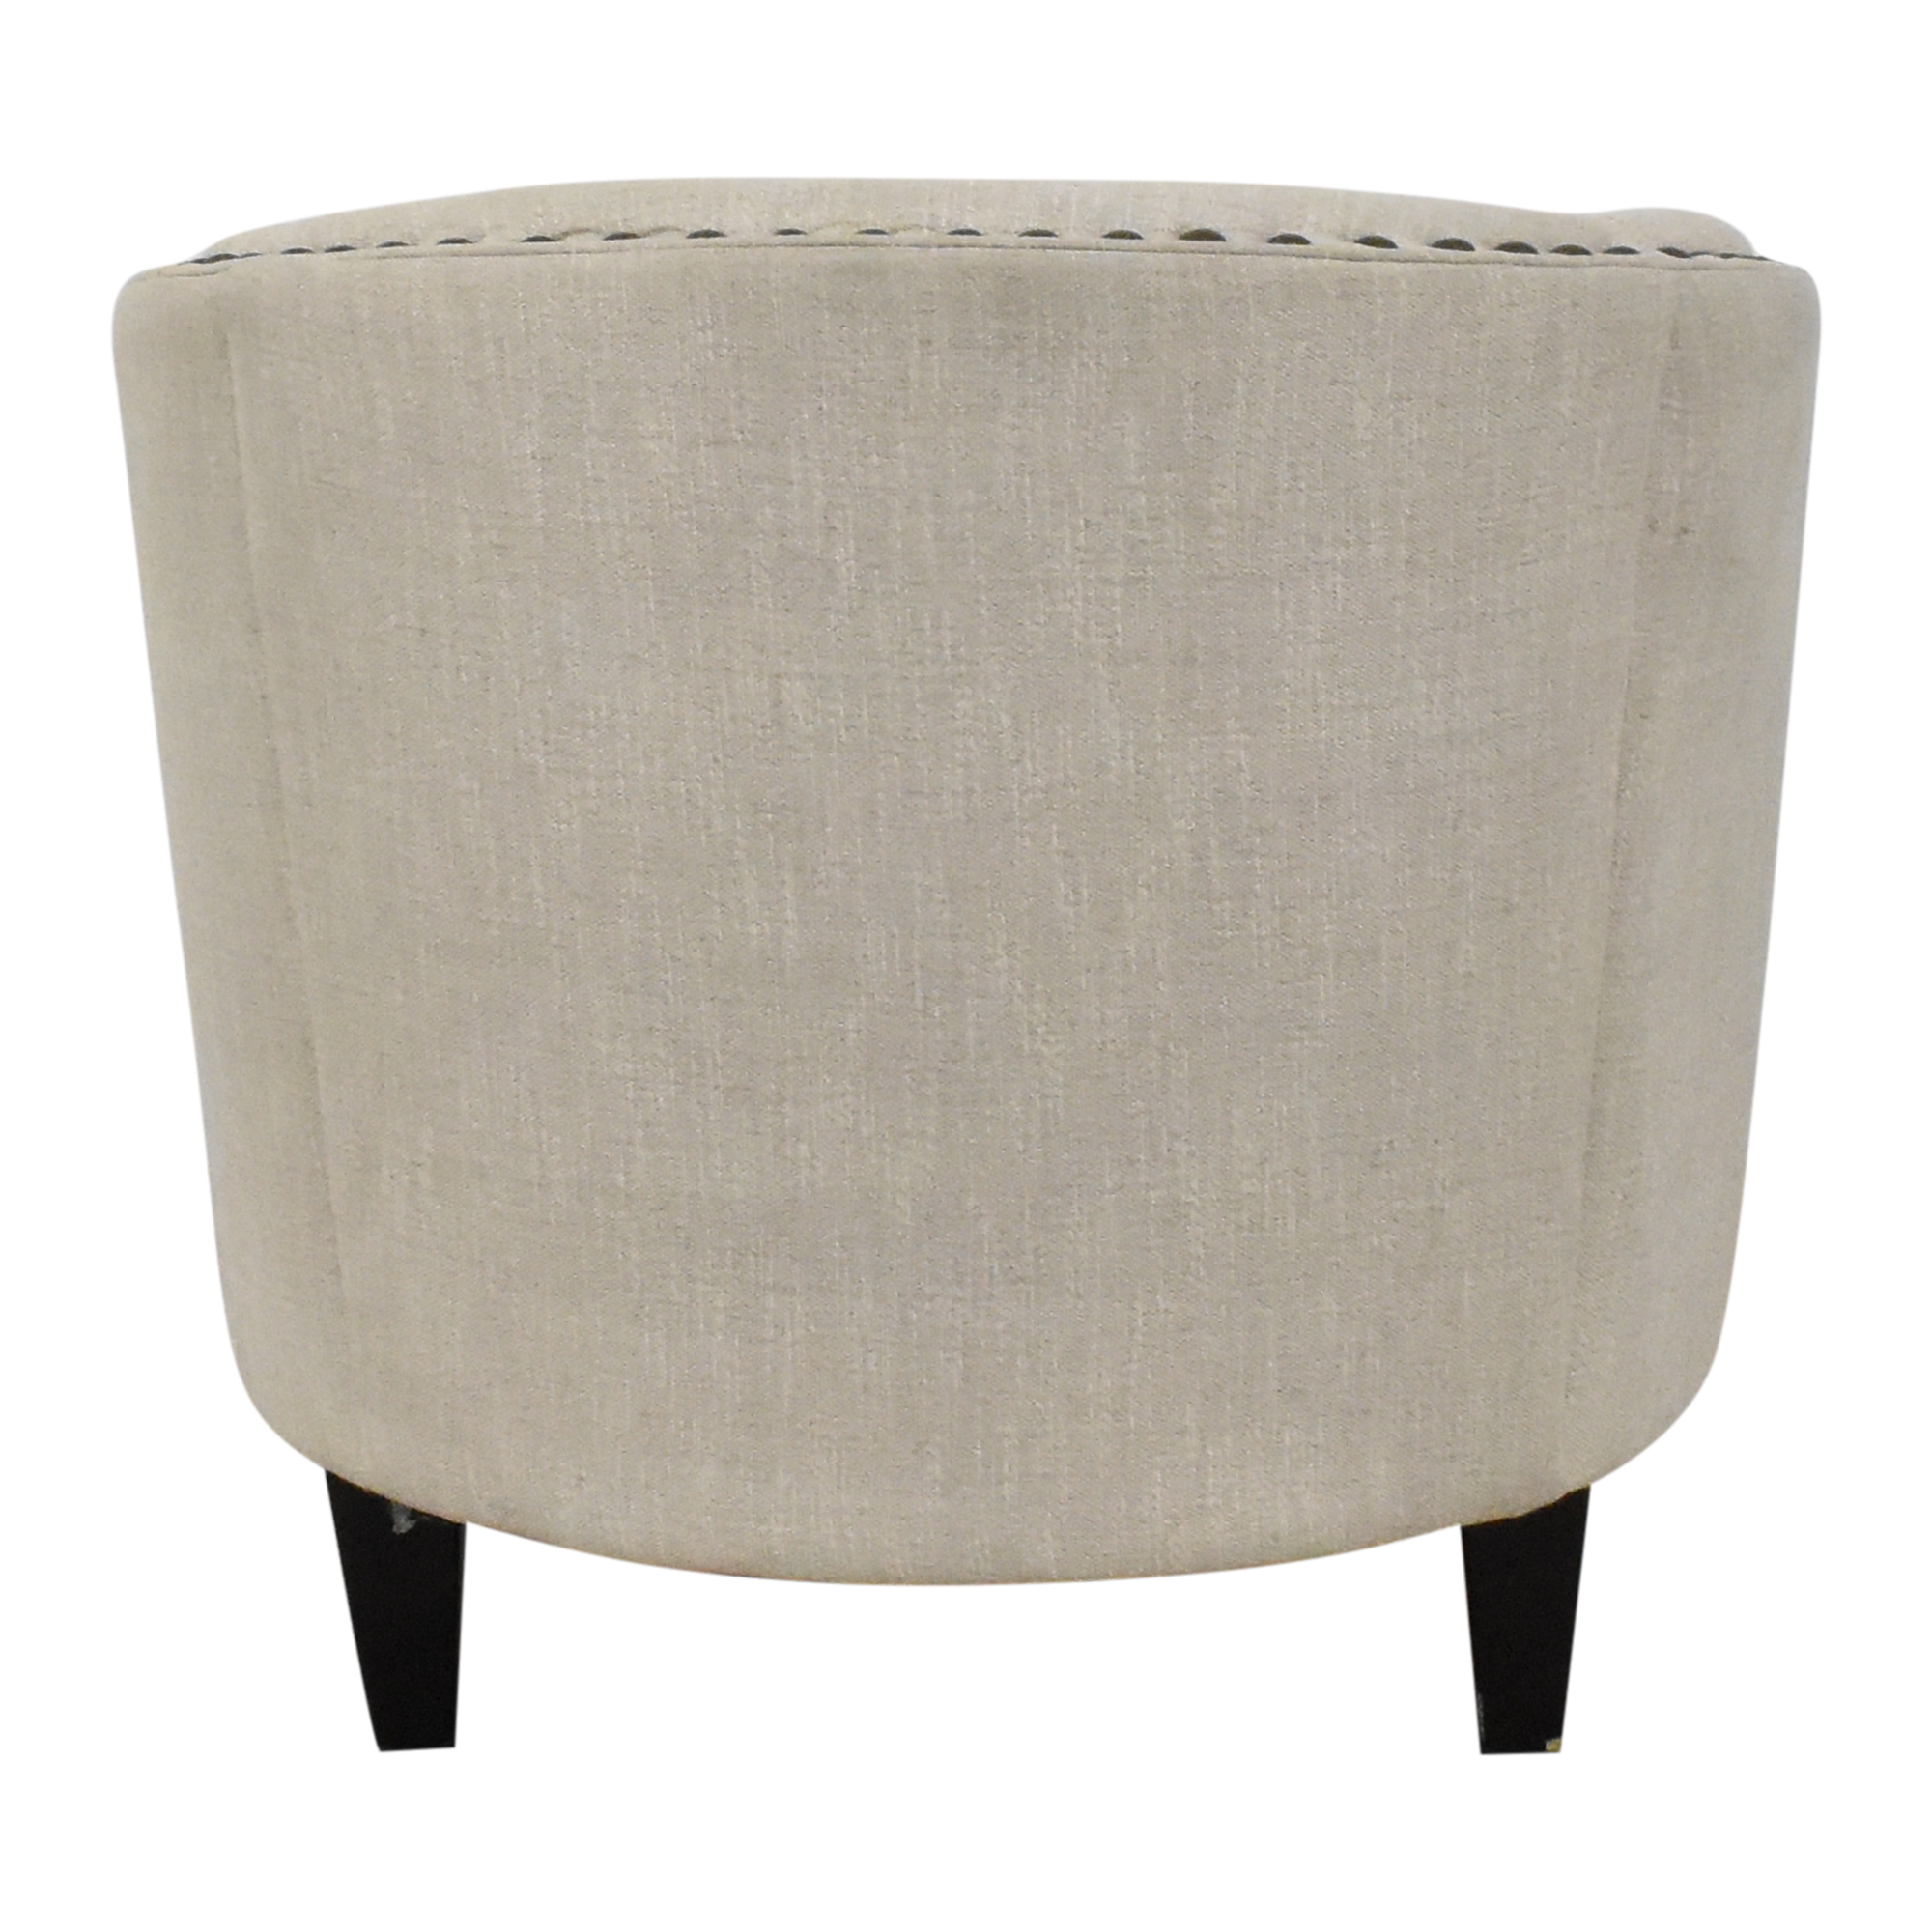 buy Pottery Barn Harlow Upholstered Armchair Pottery Barn Chairs